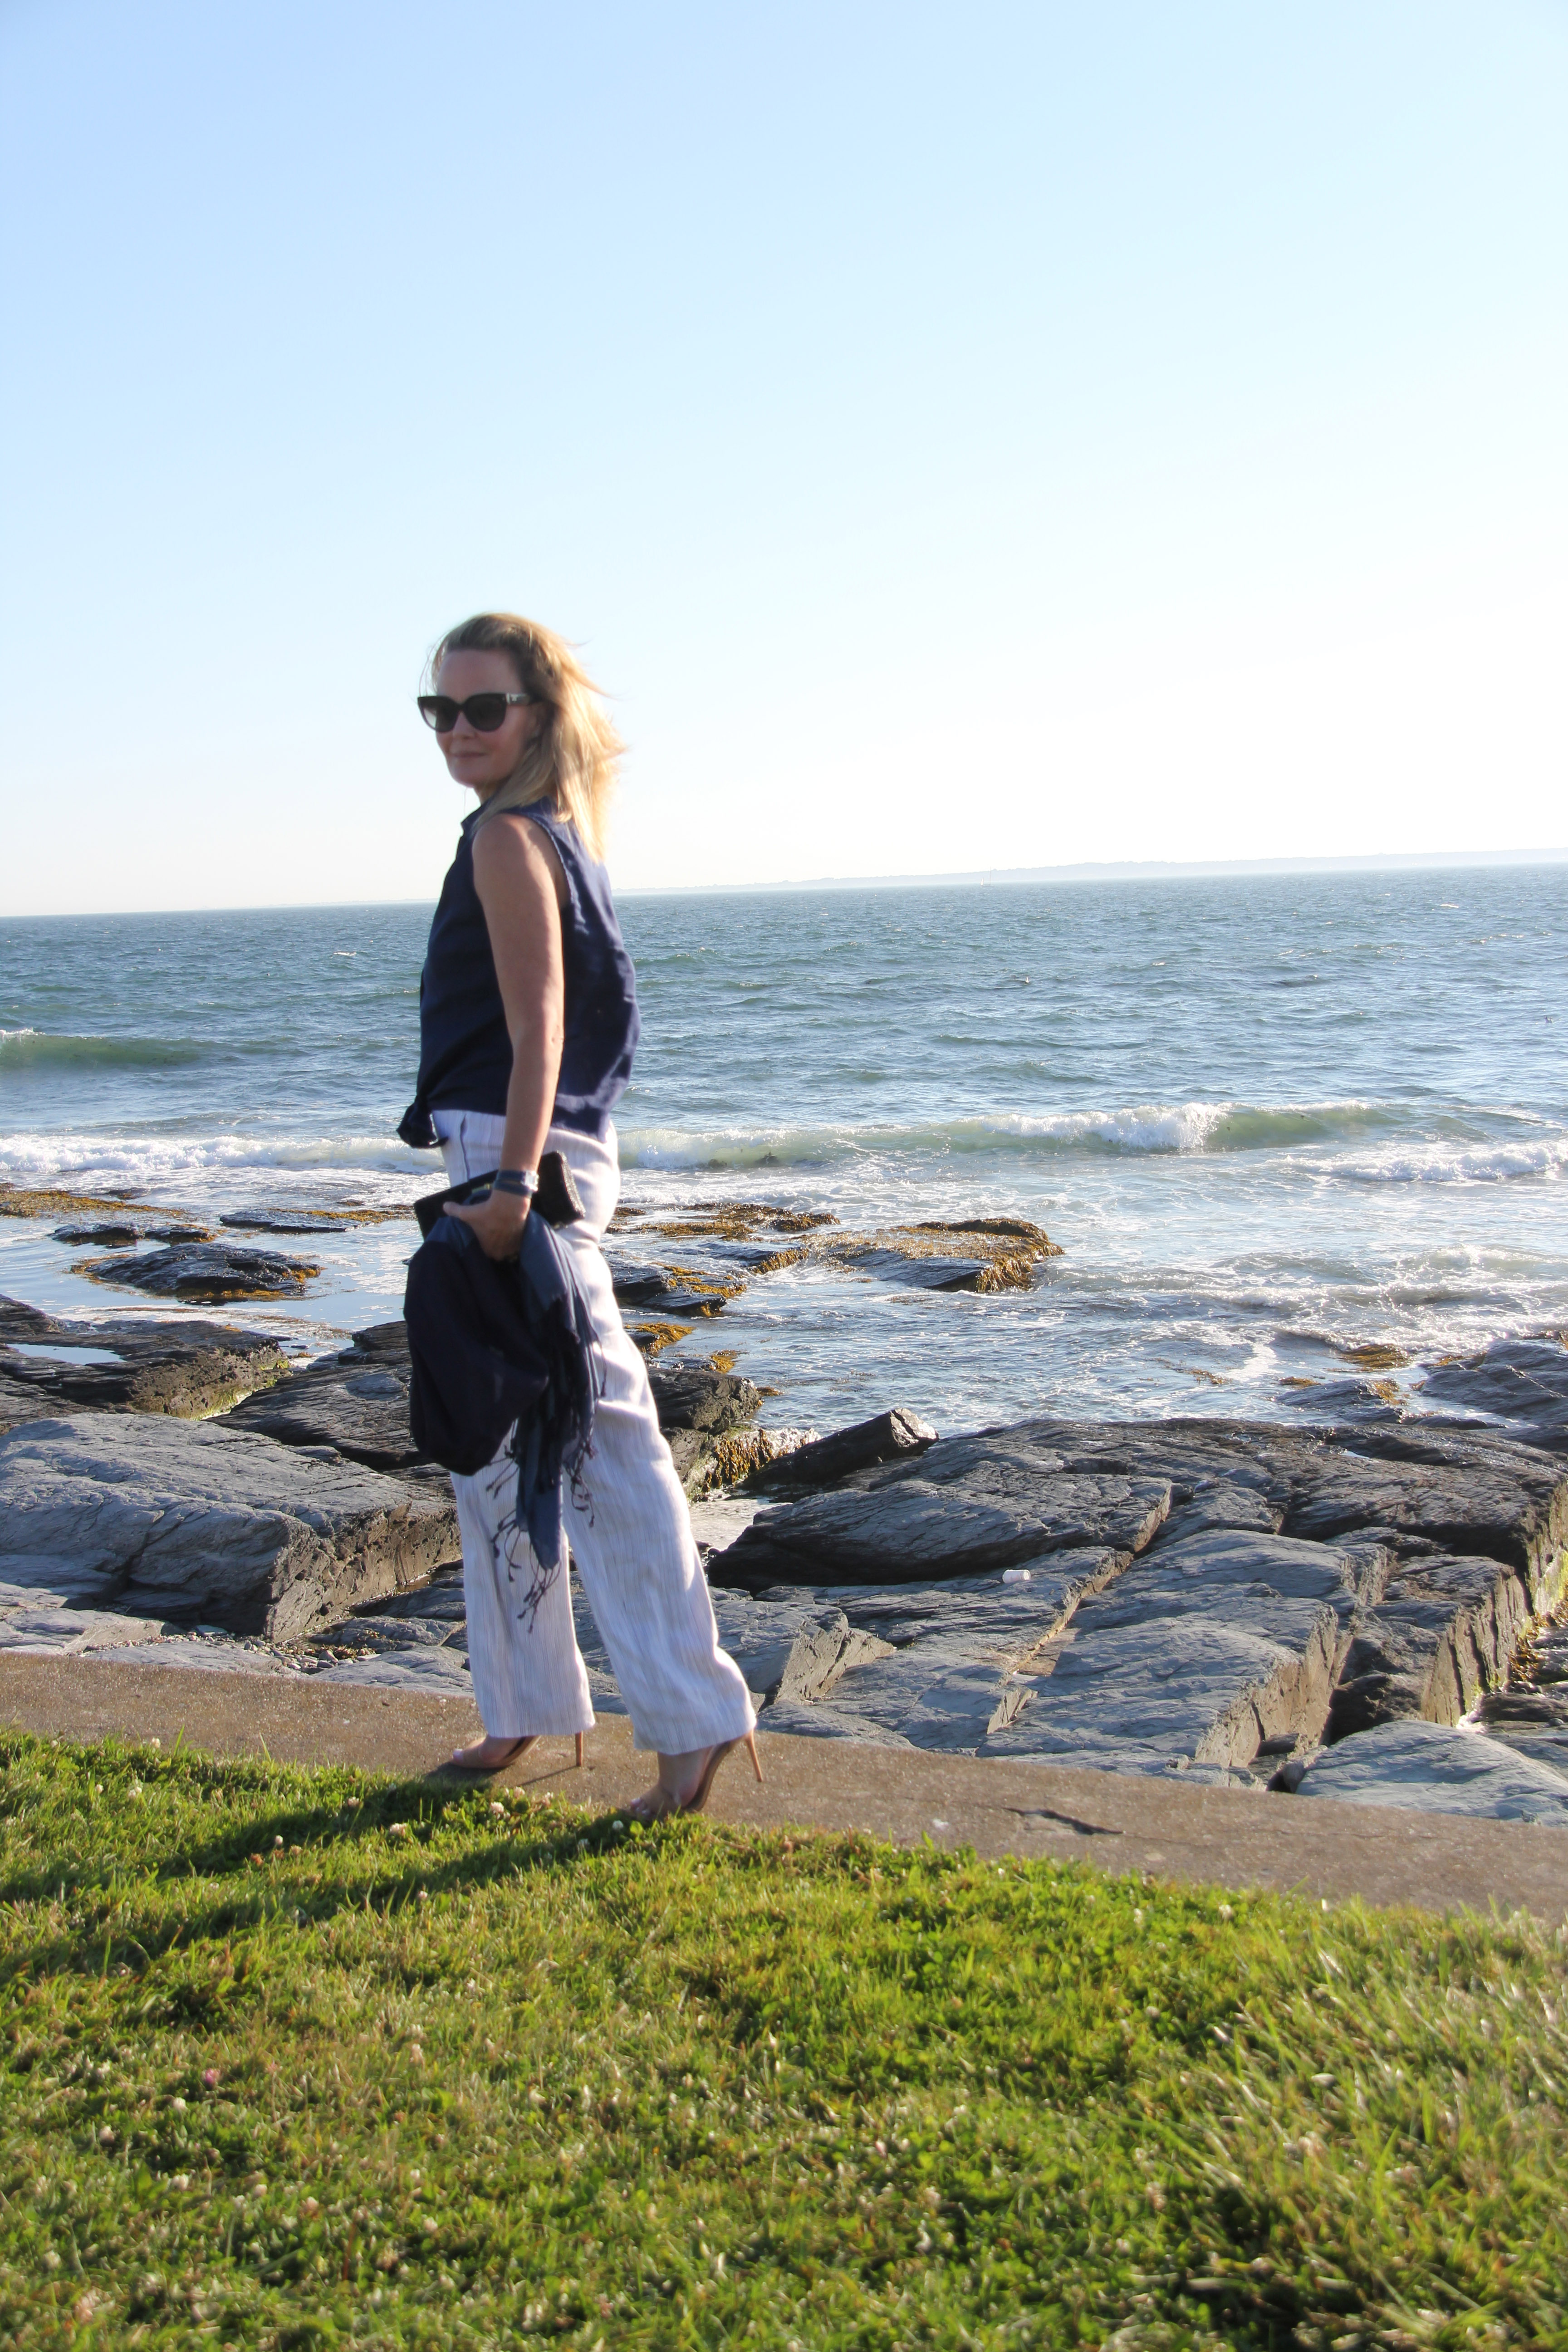 Ridgely Brode breaks out of her regular dress and white jeans look and wears striped linen pants with a tie-waisted blouse on her blog, Ridgely's Radar.